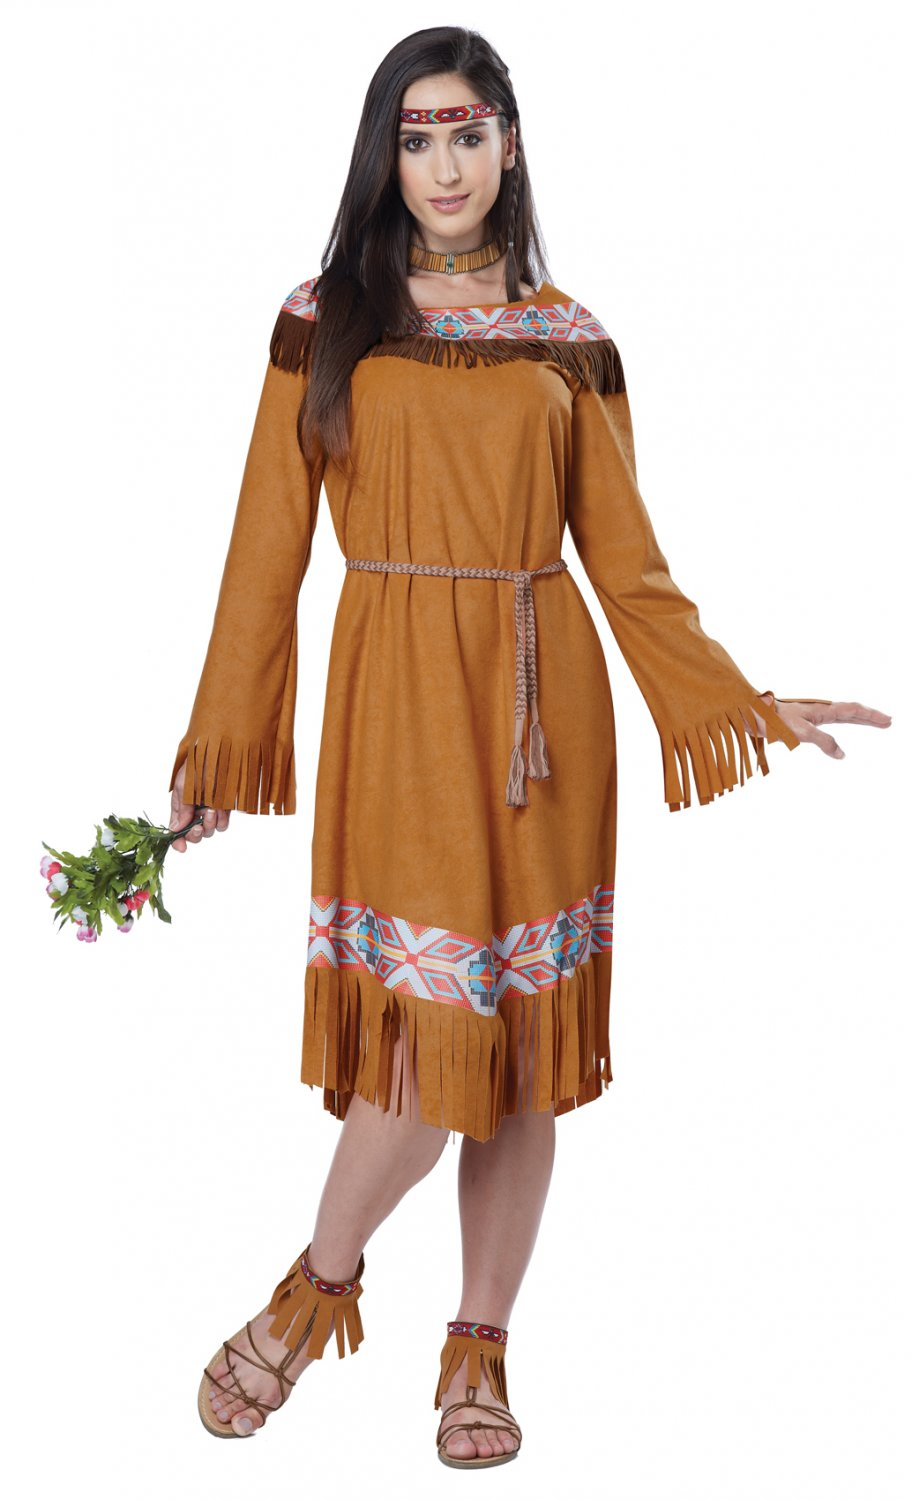 Pocahontas Classic Indian Maiden Adult Costume Size: Small #01594